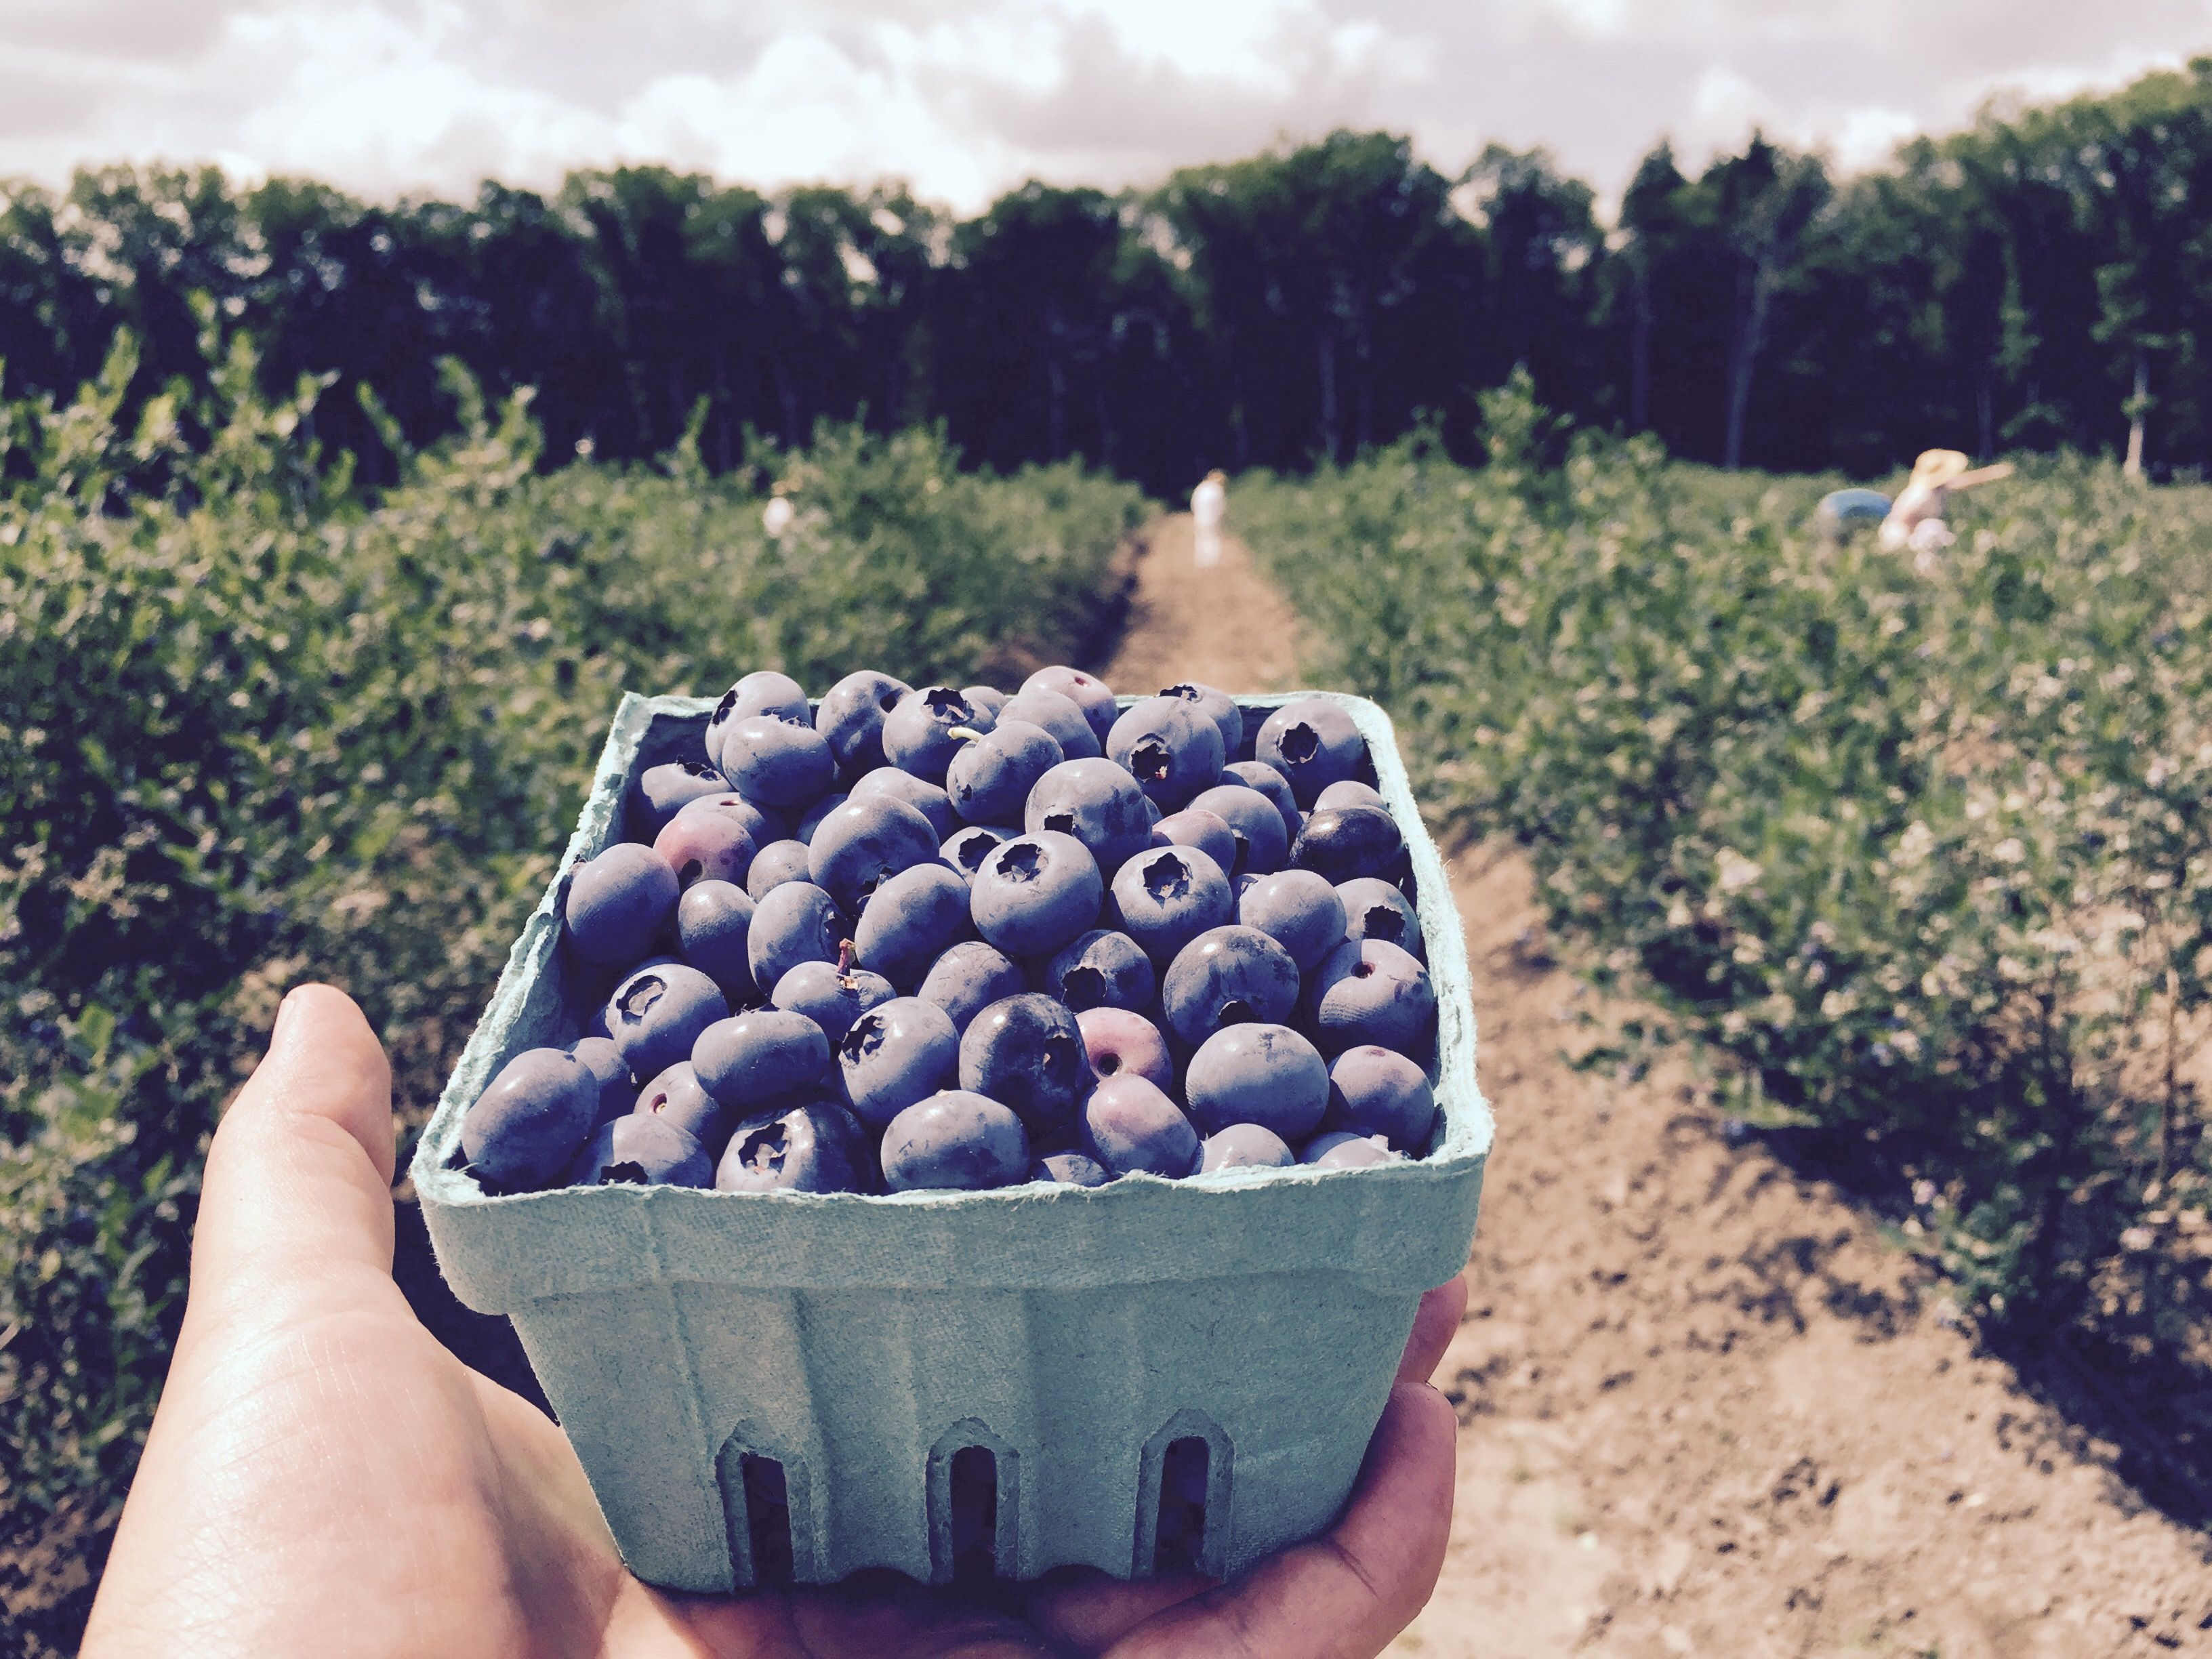 Best Blueberries Picking In South Jersey At Dimeo S You Pick Blueberry Farm With The Sweetest